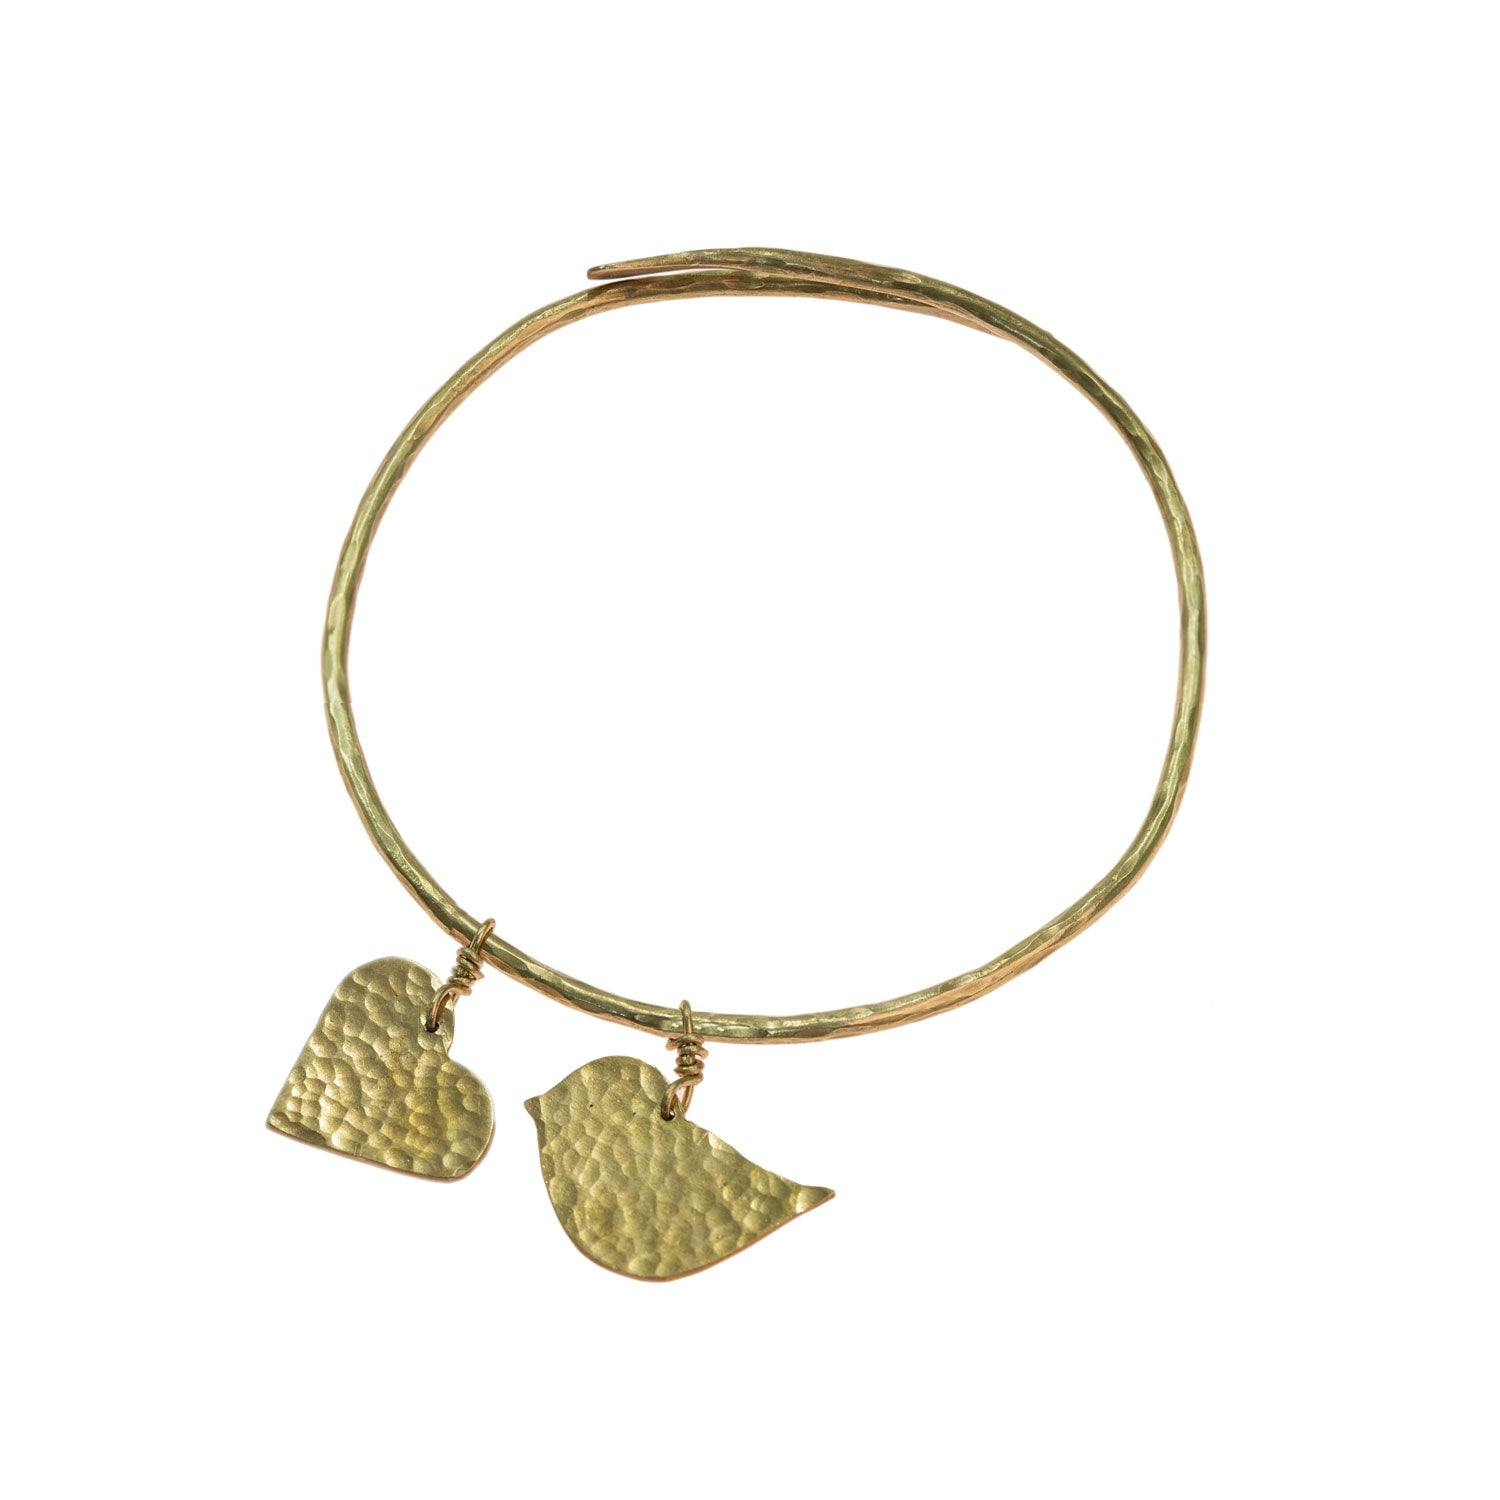 Hammered brass love bird bangle